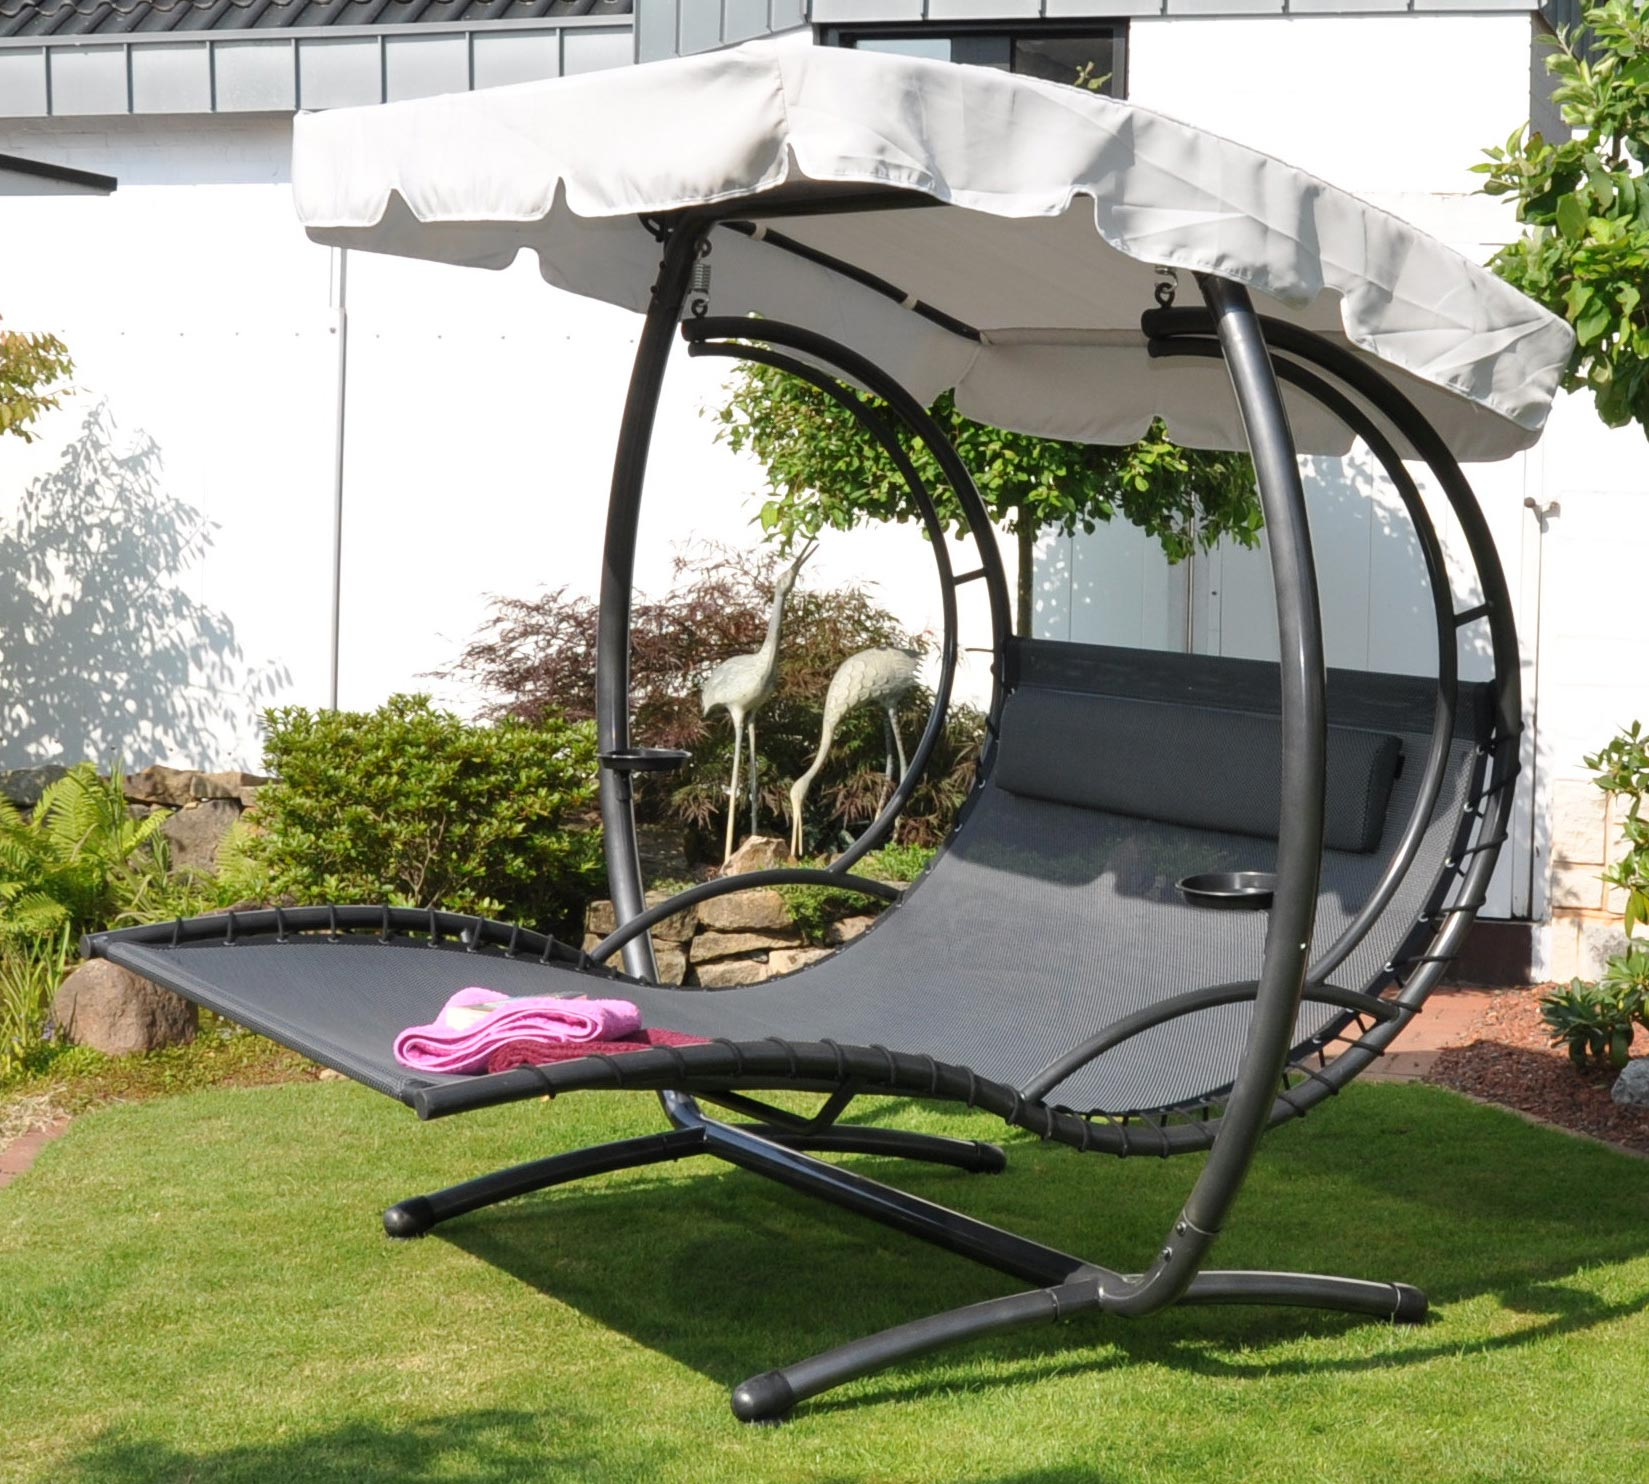 doppel gartenliege duo swing xxl stahl schwarz mit sonnendach bei. Black Bedroom Furniture Sets. Home Design Ideas